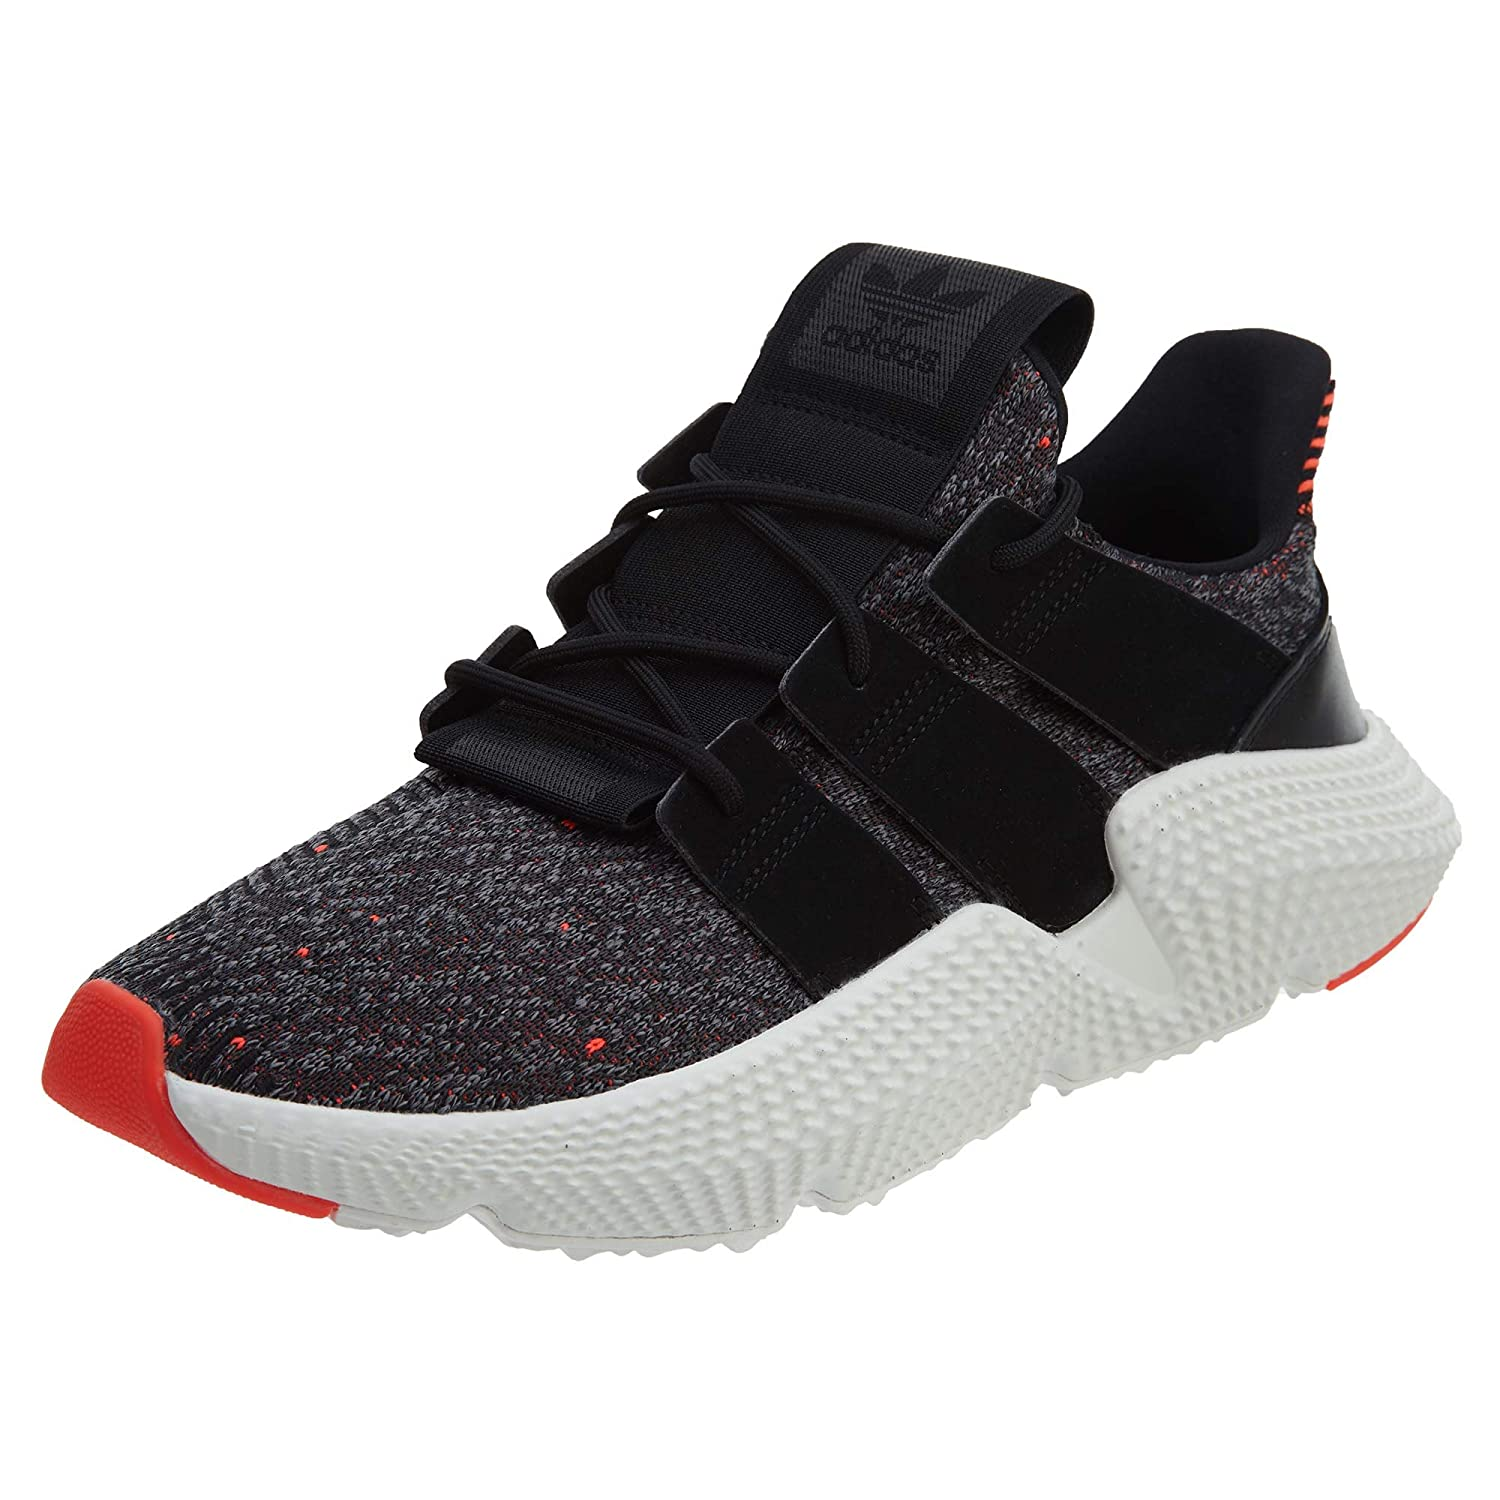 Adidas Prophere Prophere Prophere herr Style  CQ3022 -Blk  röd Storlek  7  nya exklusiva high-end